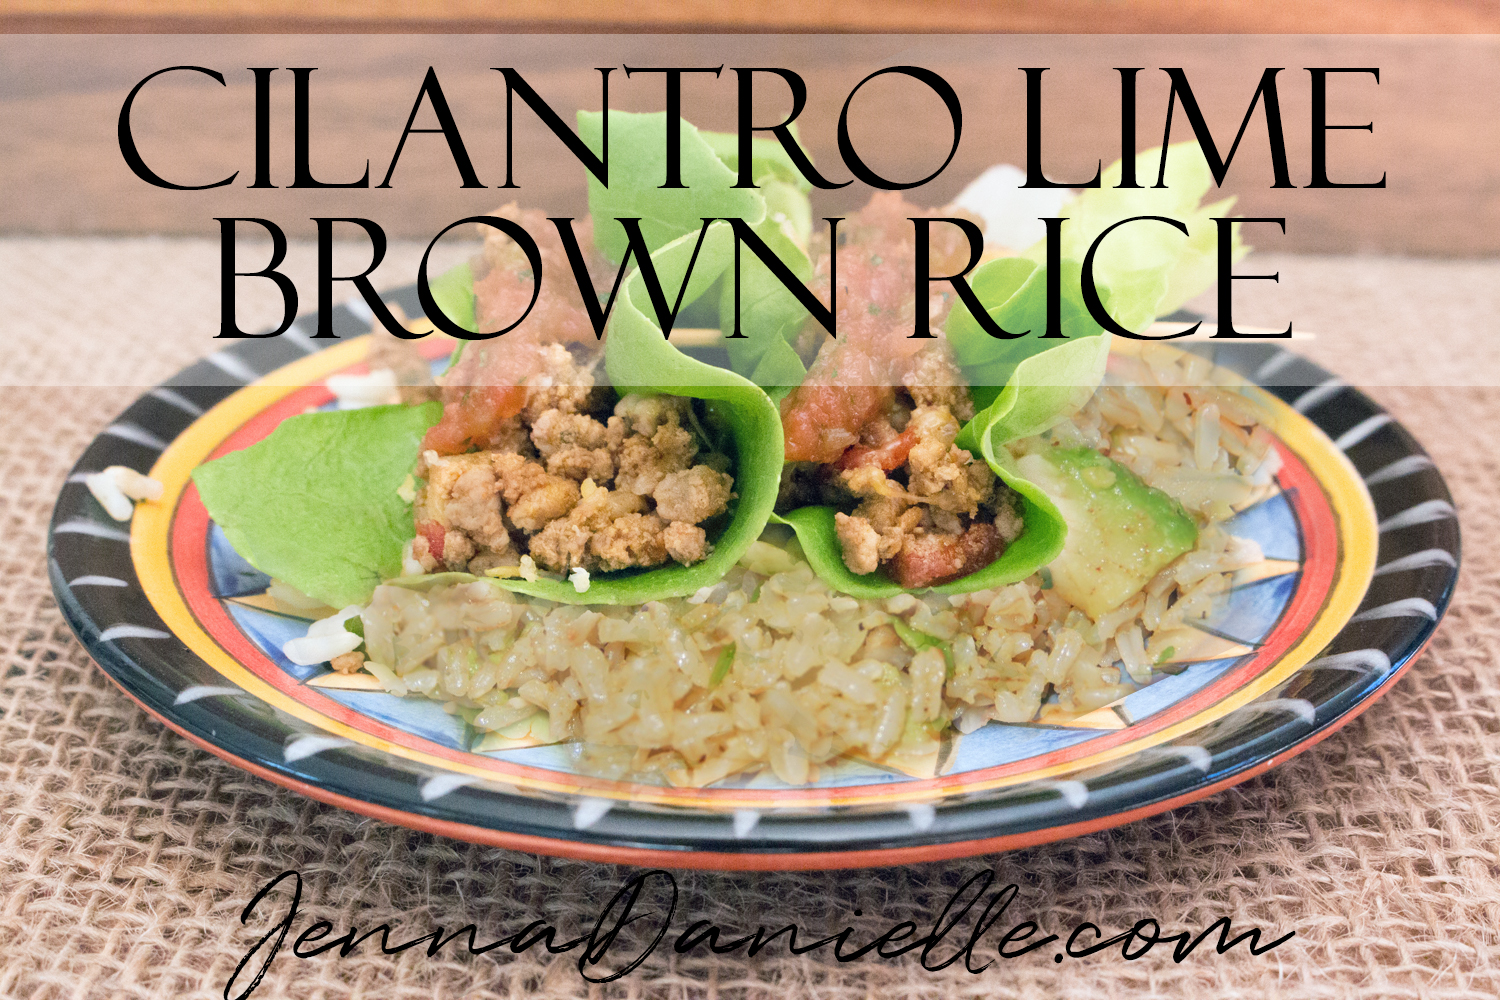 Delicious cilantro lime brown rice perfect for any fiesta!